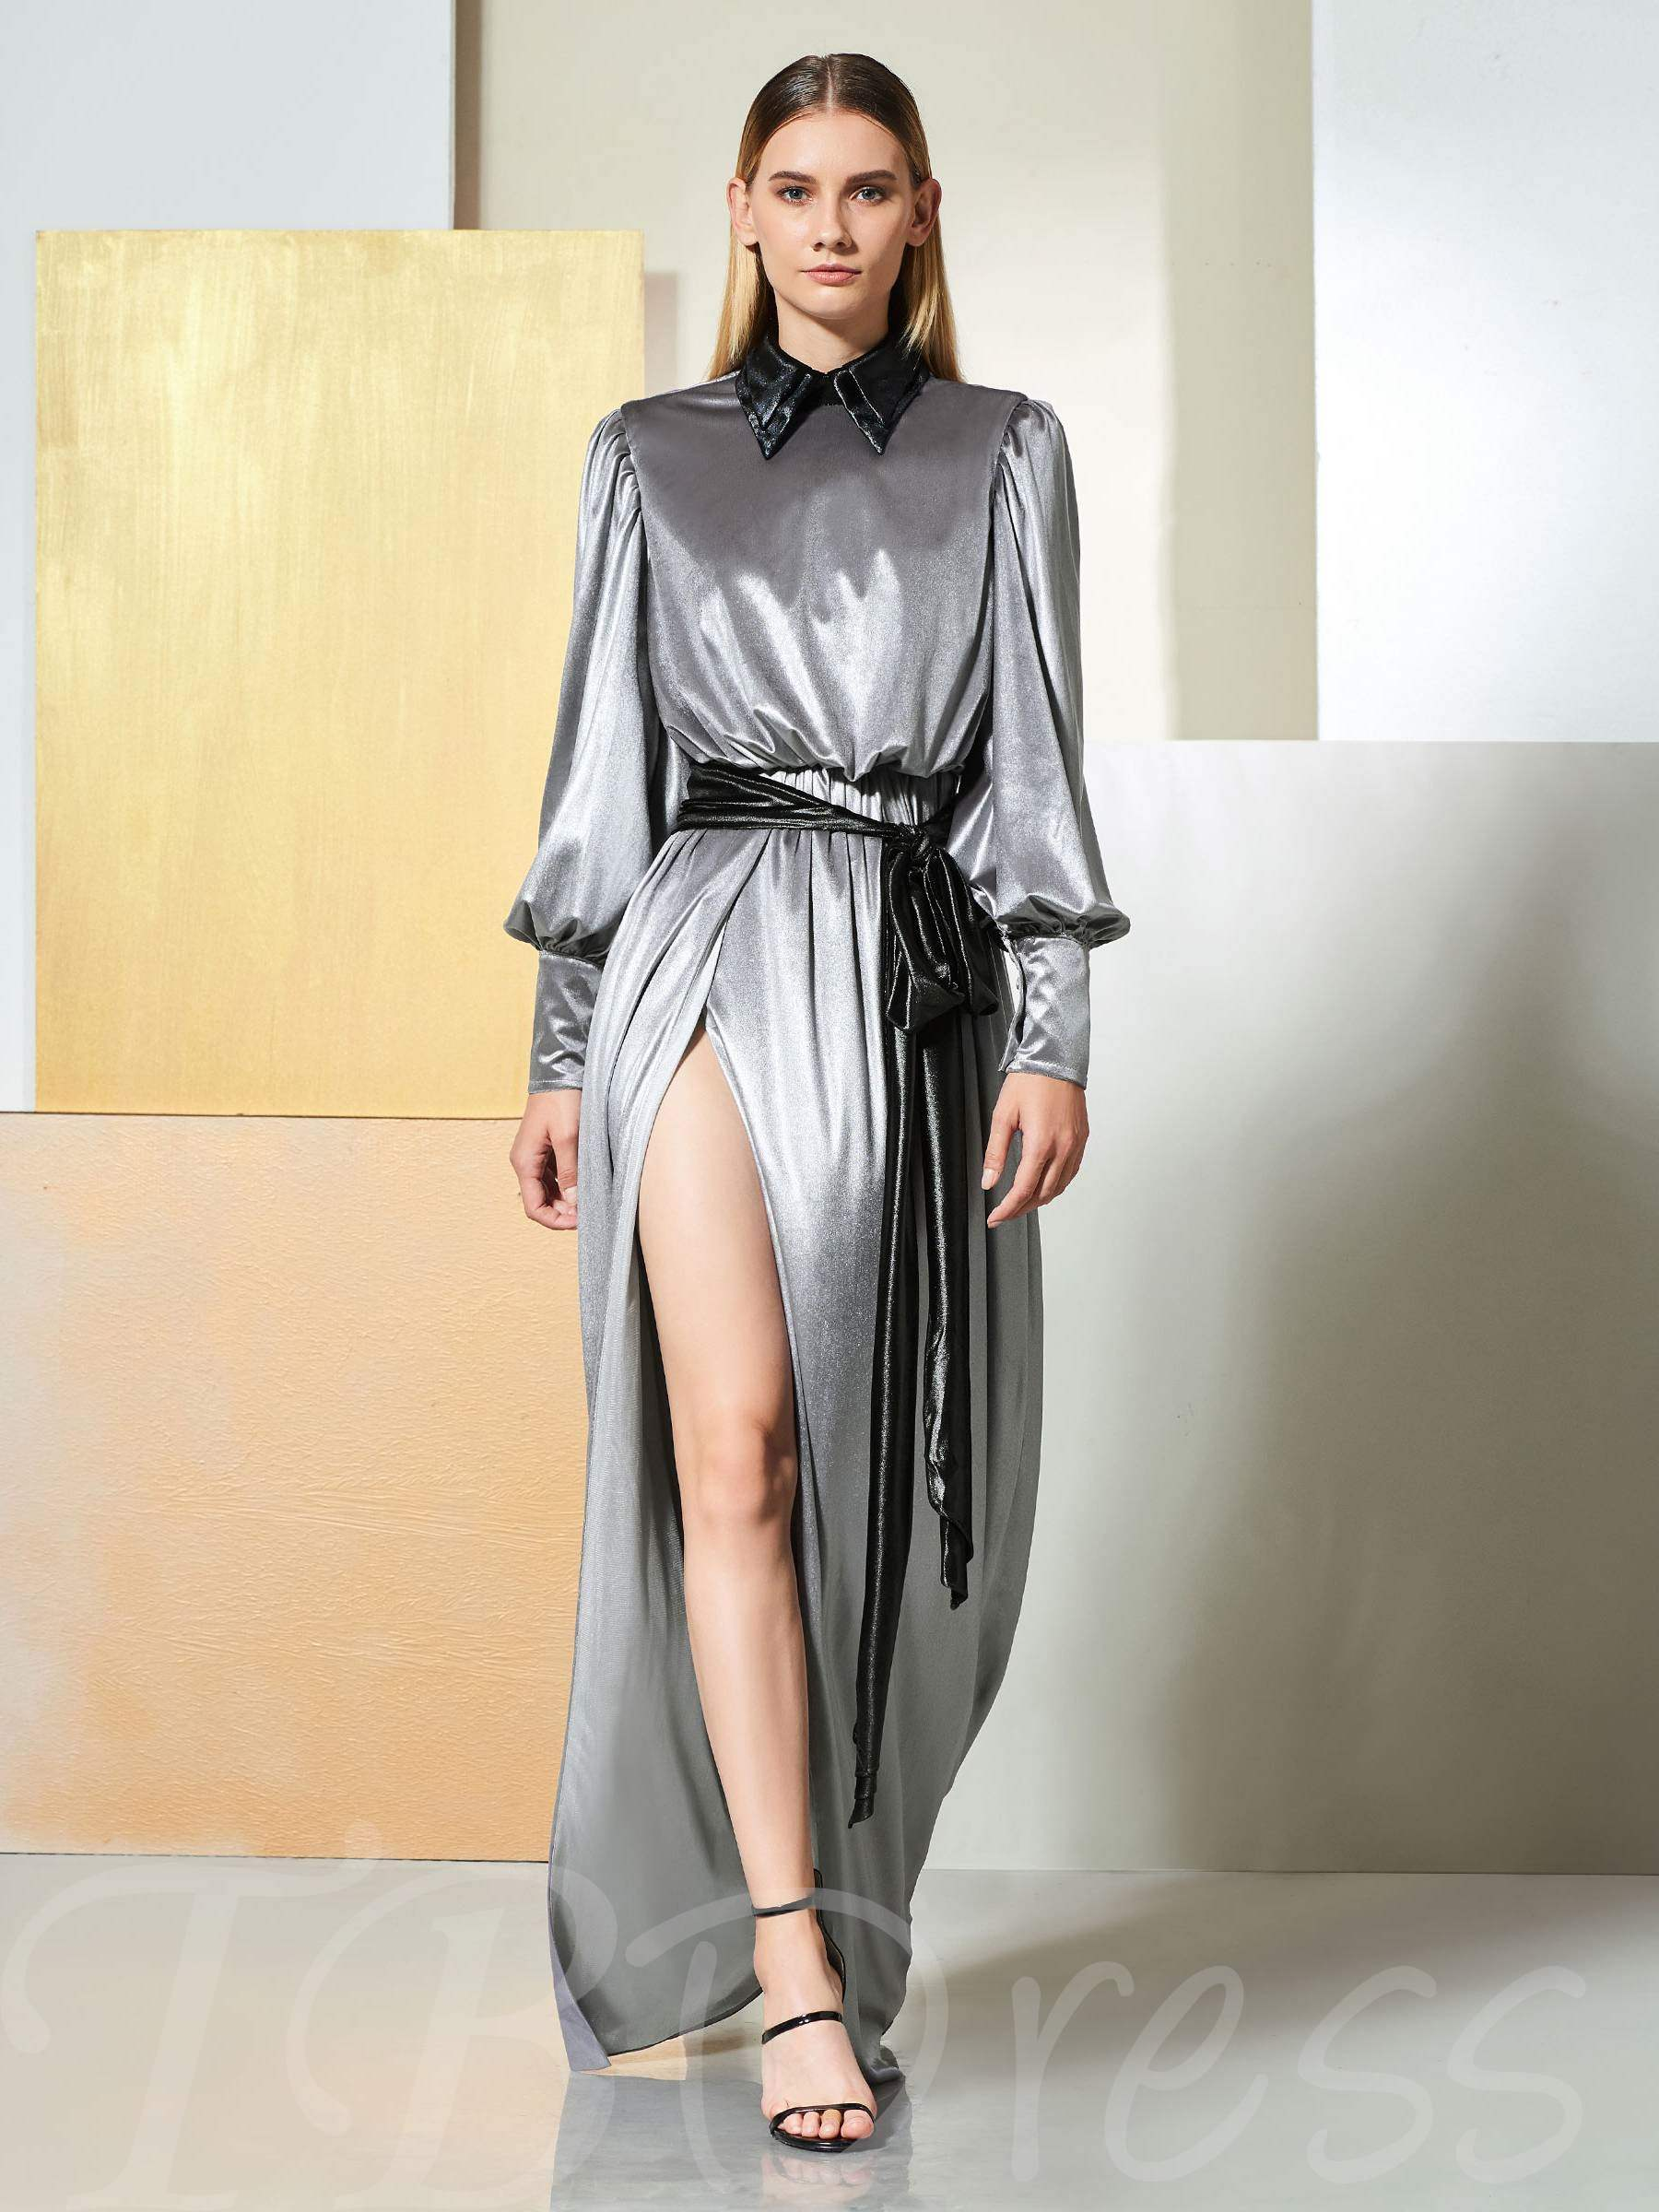 Buy A-Line Draped Sashes Split-Front Evening Dress, Spring,Summer,Fall,Winter, 13348015 for $154.85 in TBDress store